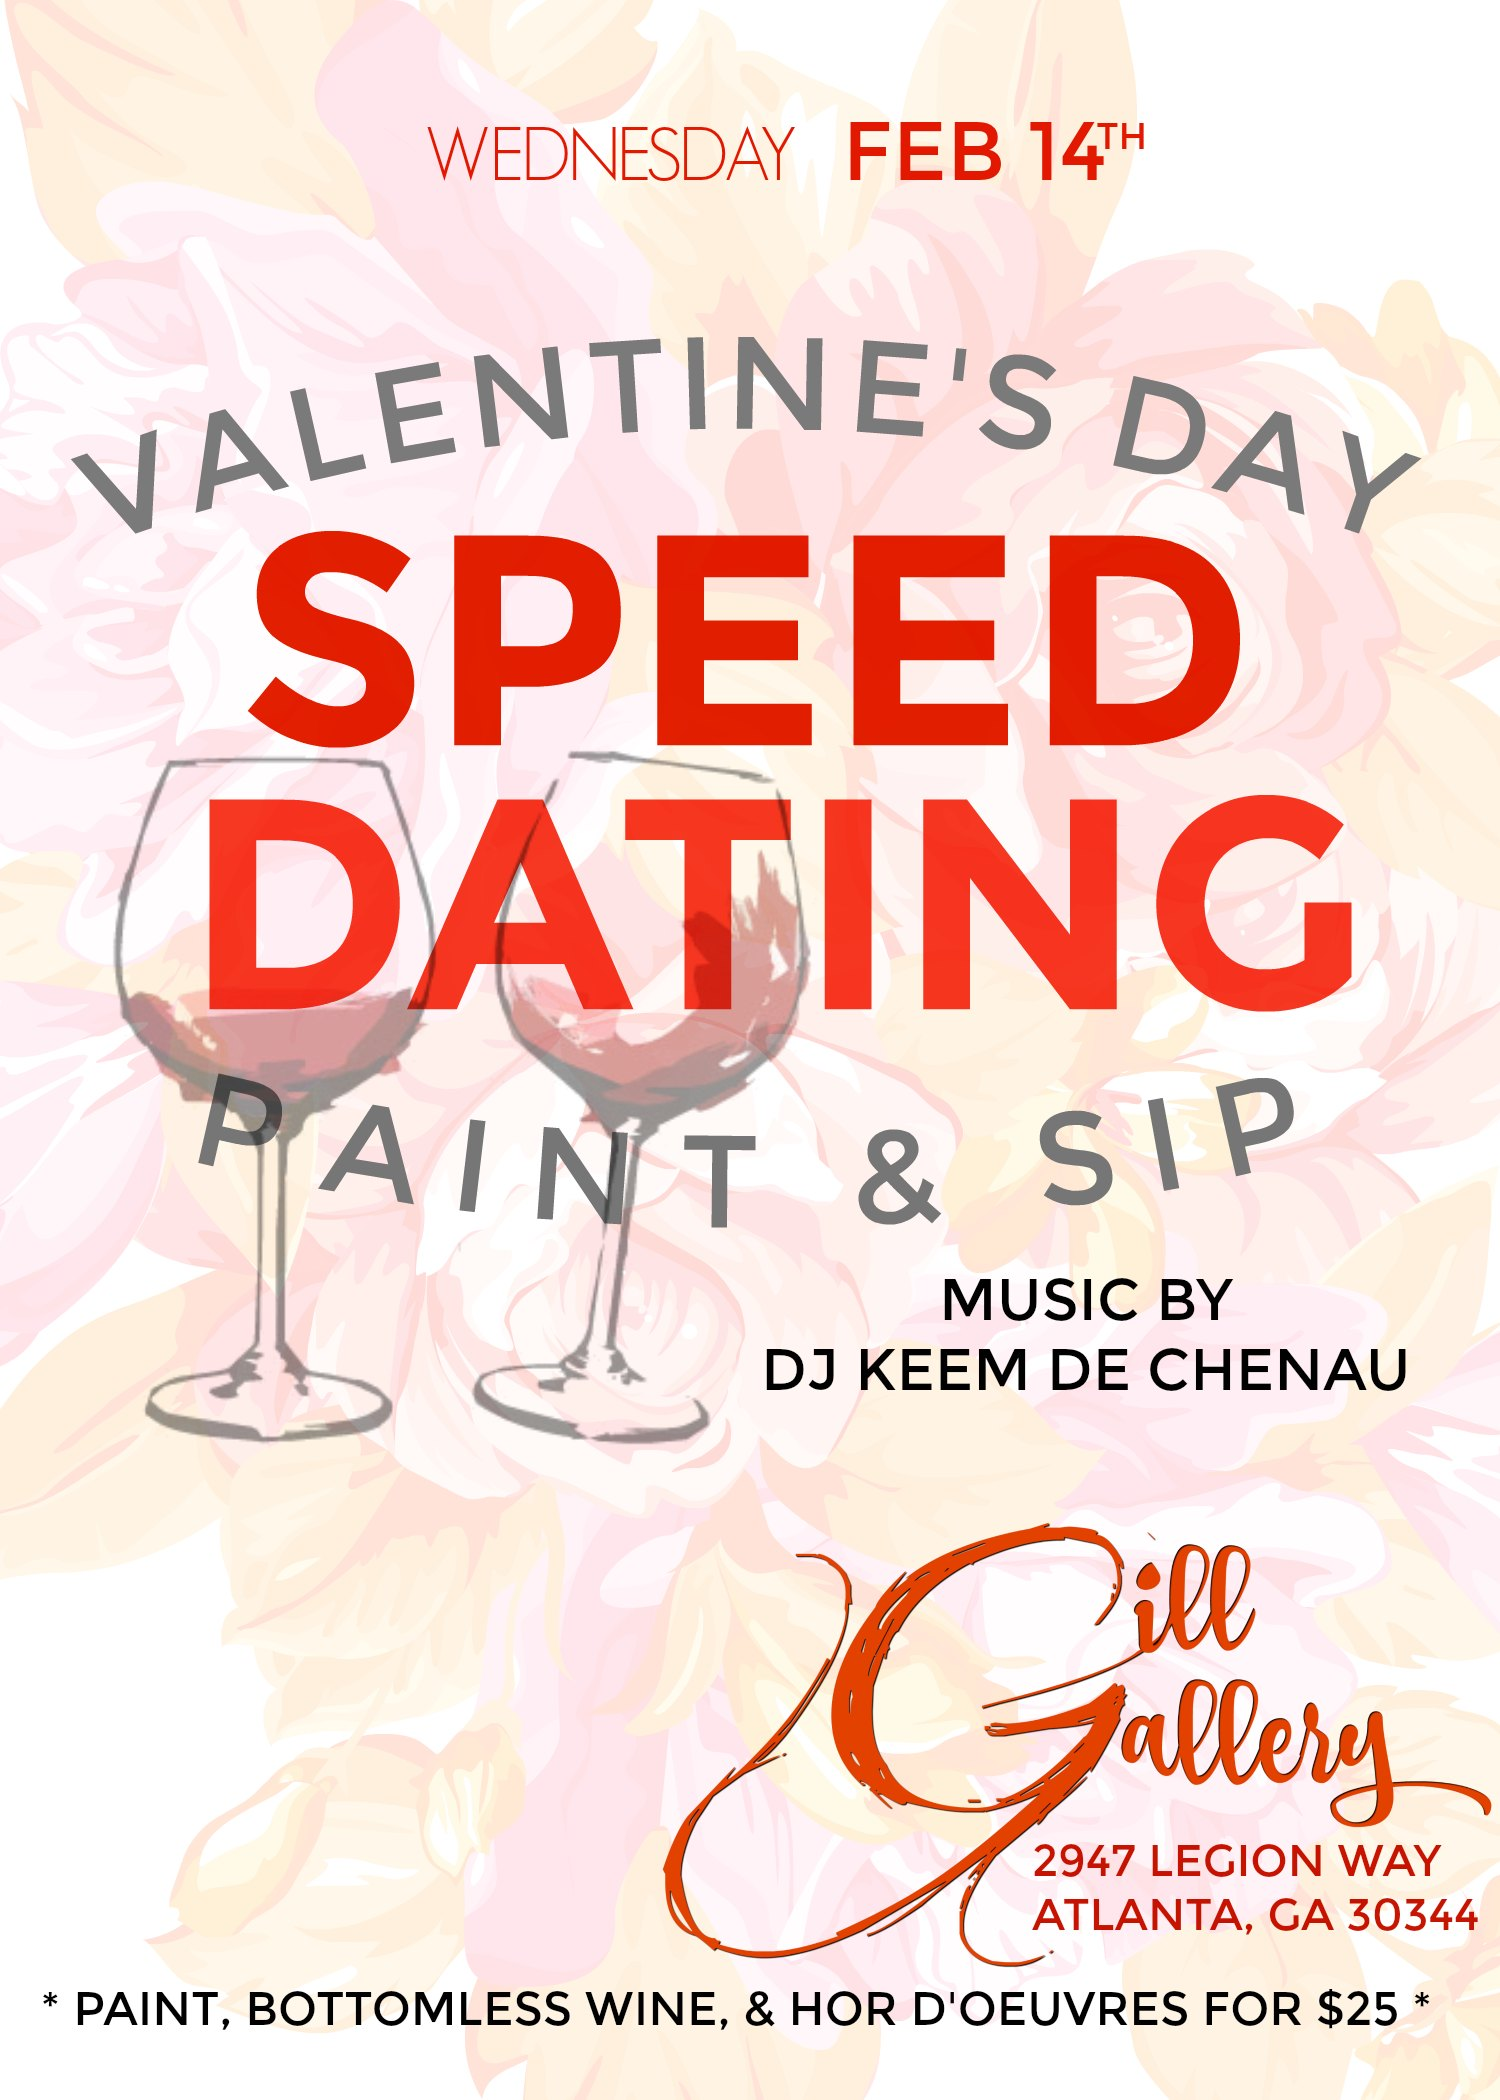 Speed dating valentines day